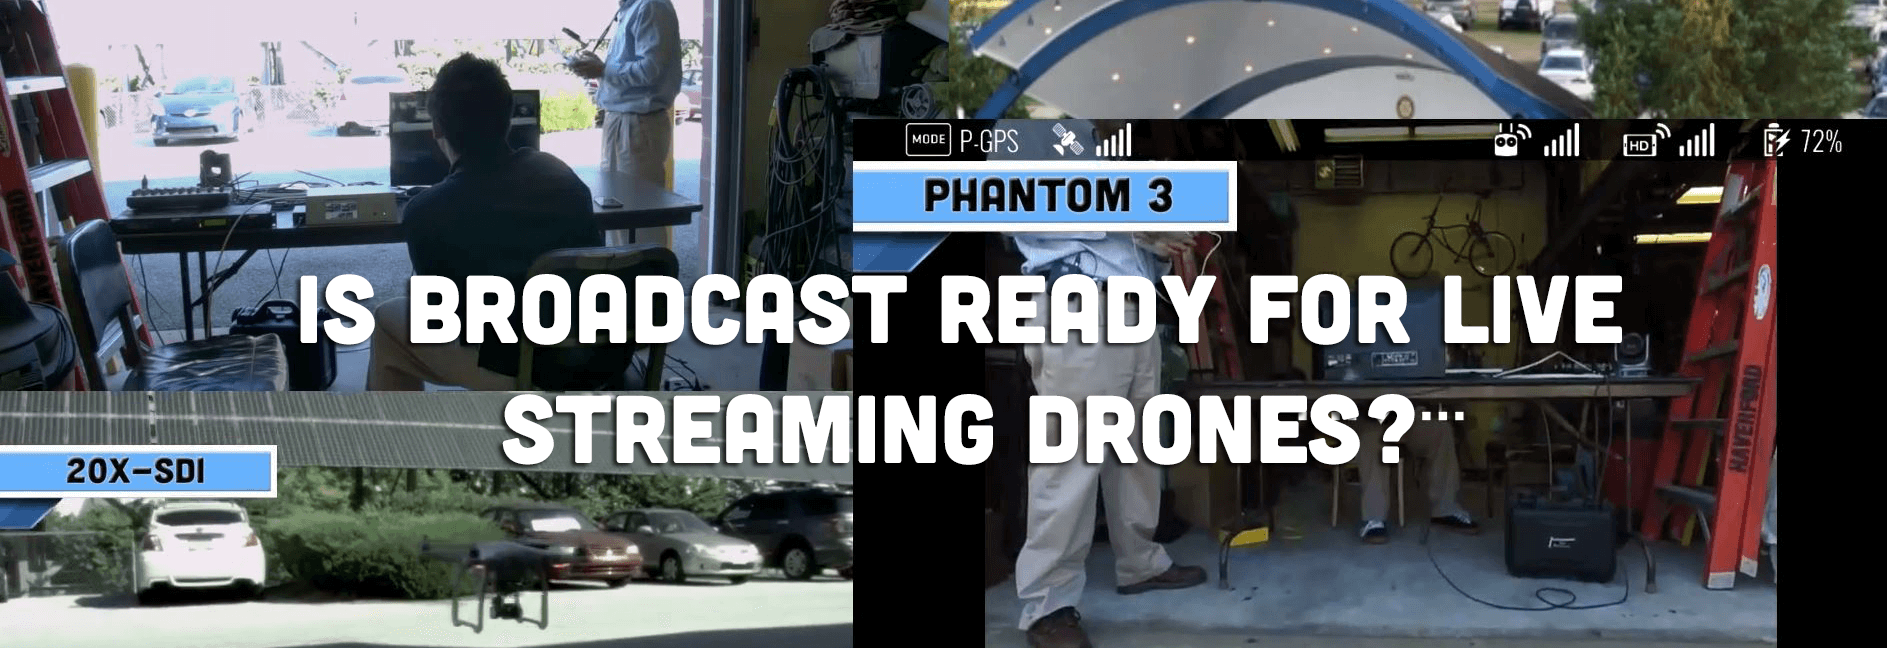 Live Streaming with DJI Phantom 3 Drone to YouTube LIve